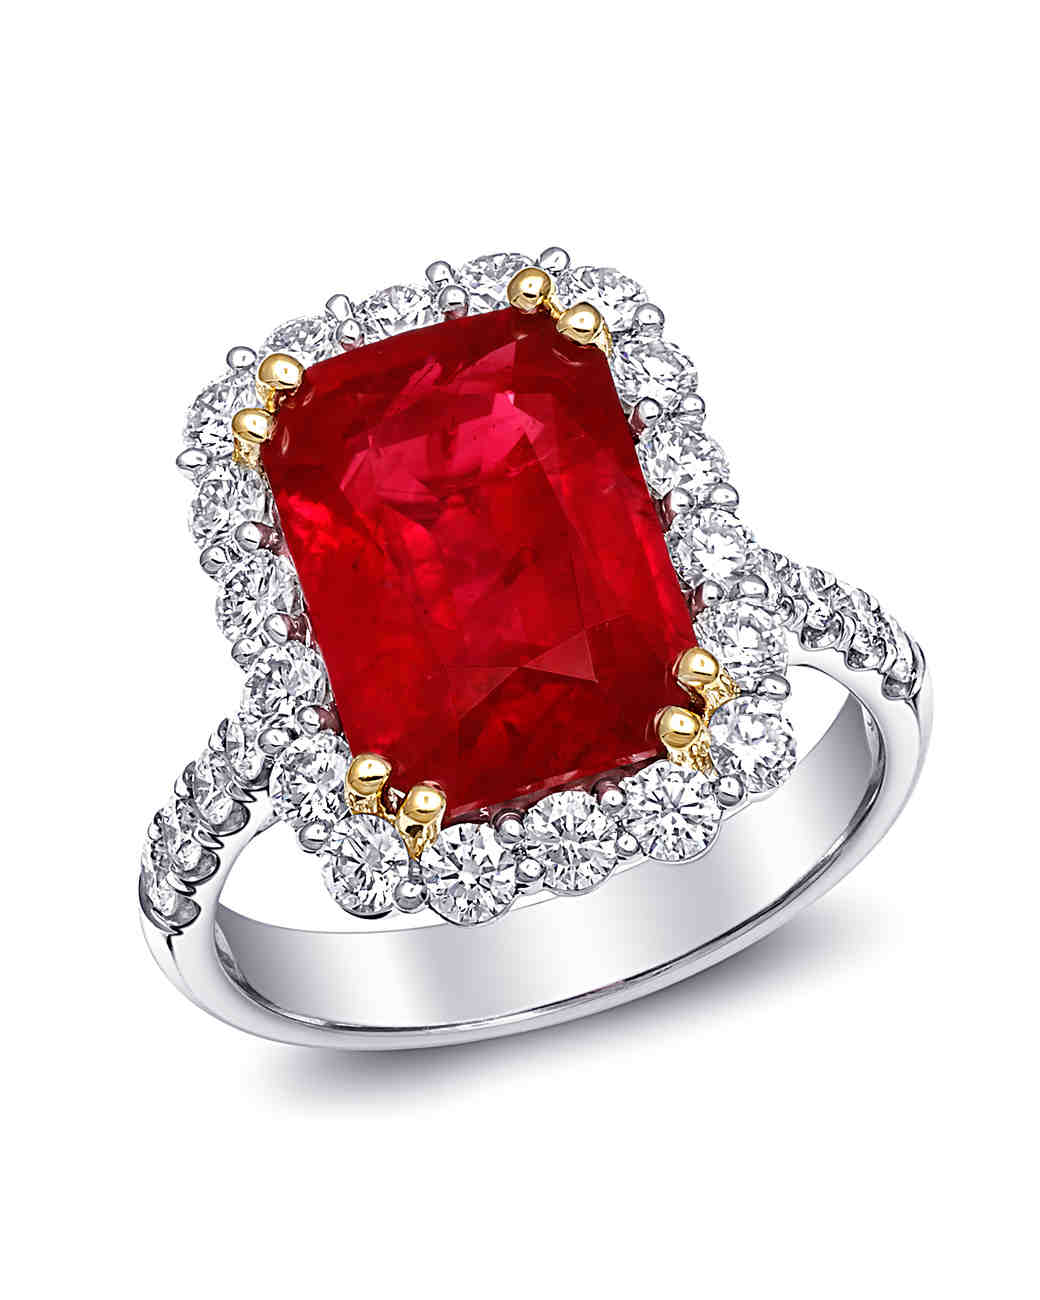 Ruby cut Emerald engagement rings pictures forecast to wear for summer in 2019